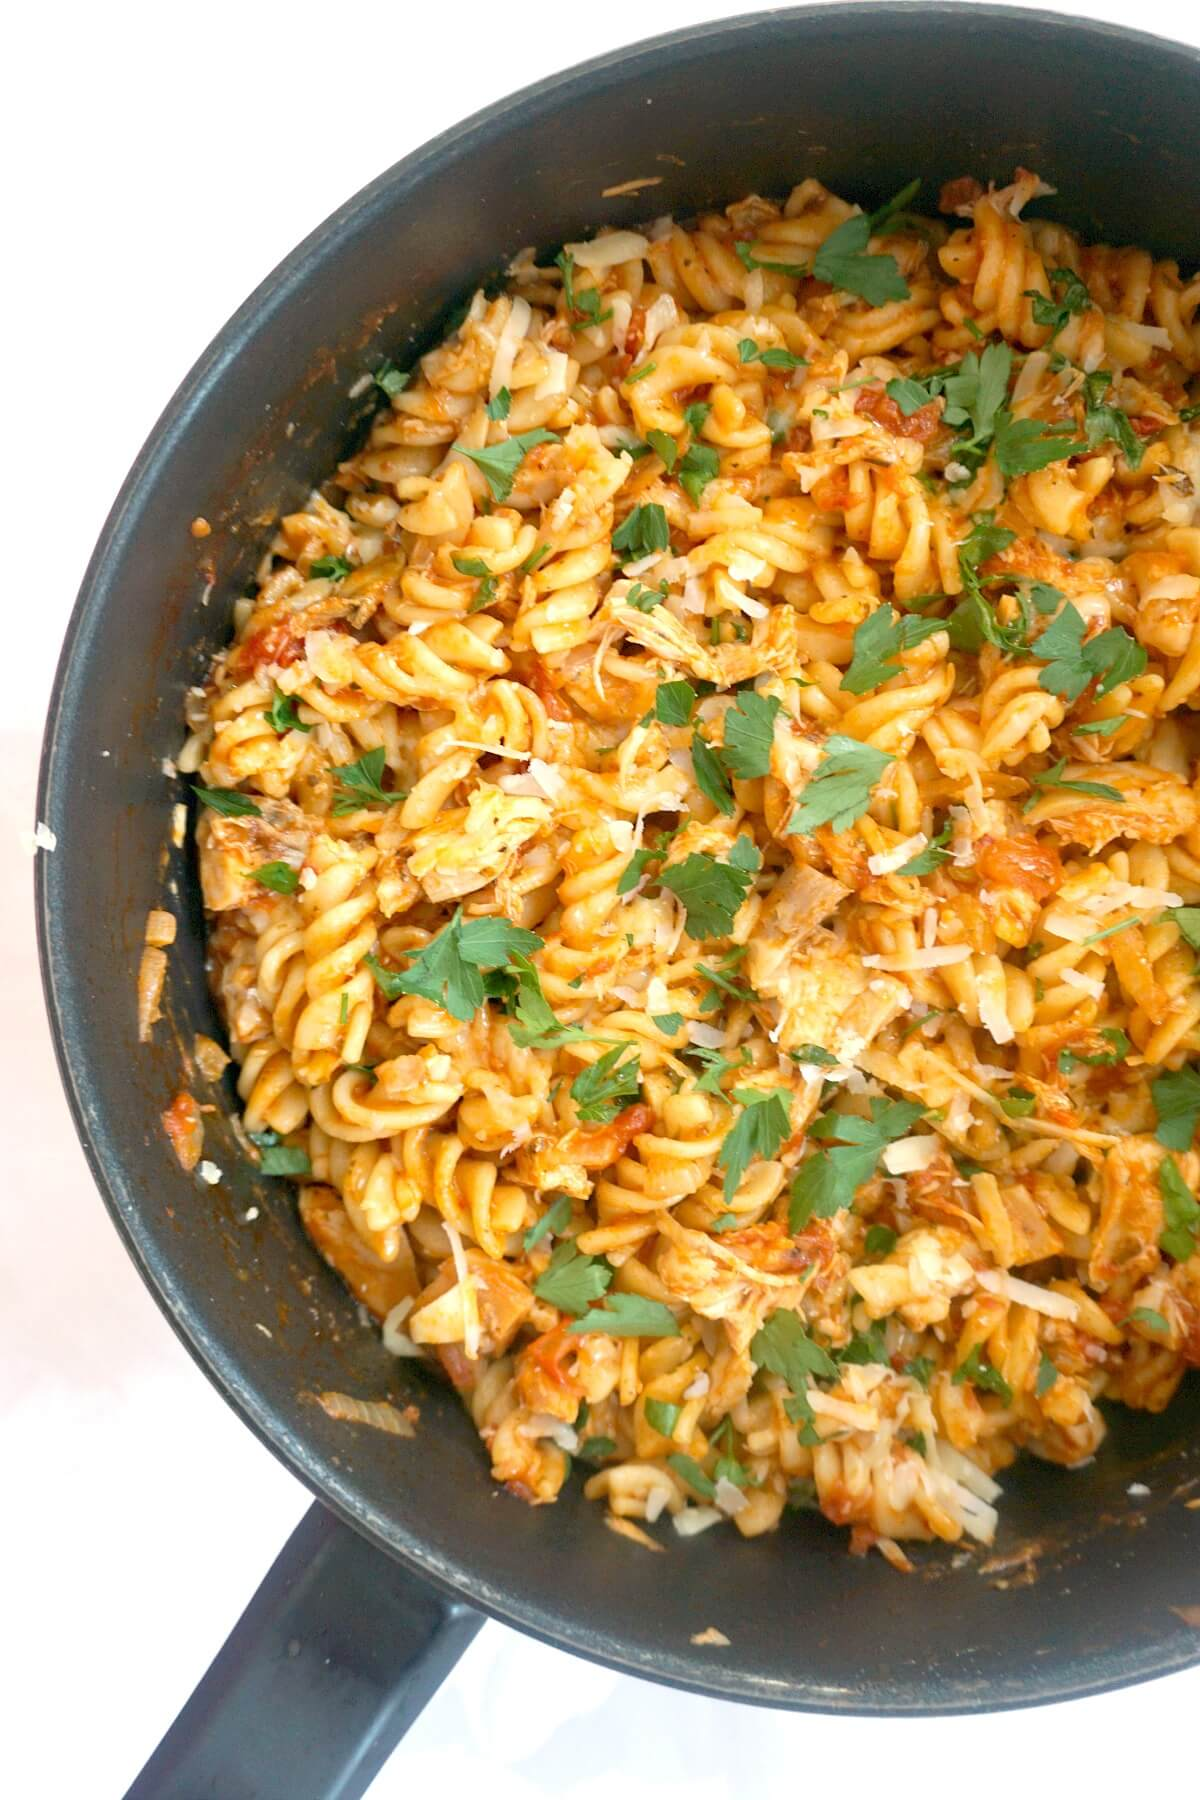 Half a pan of chicken pasta